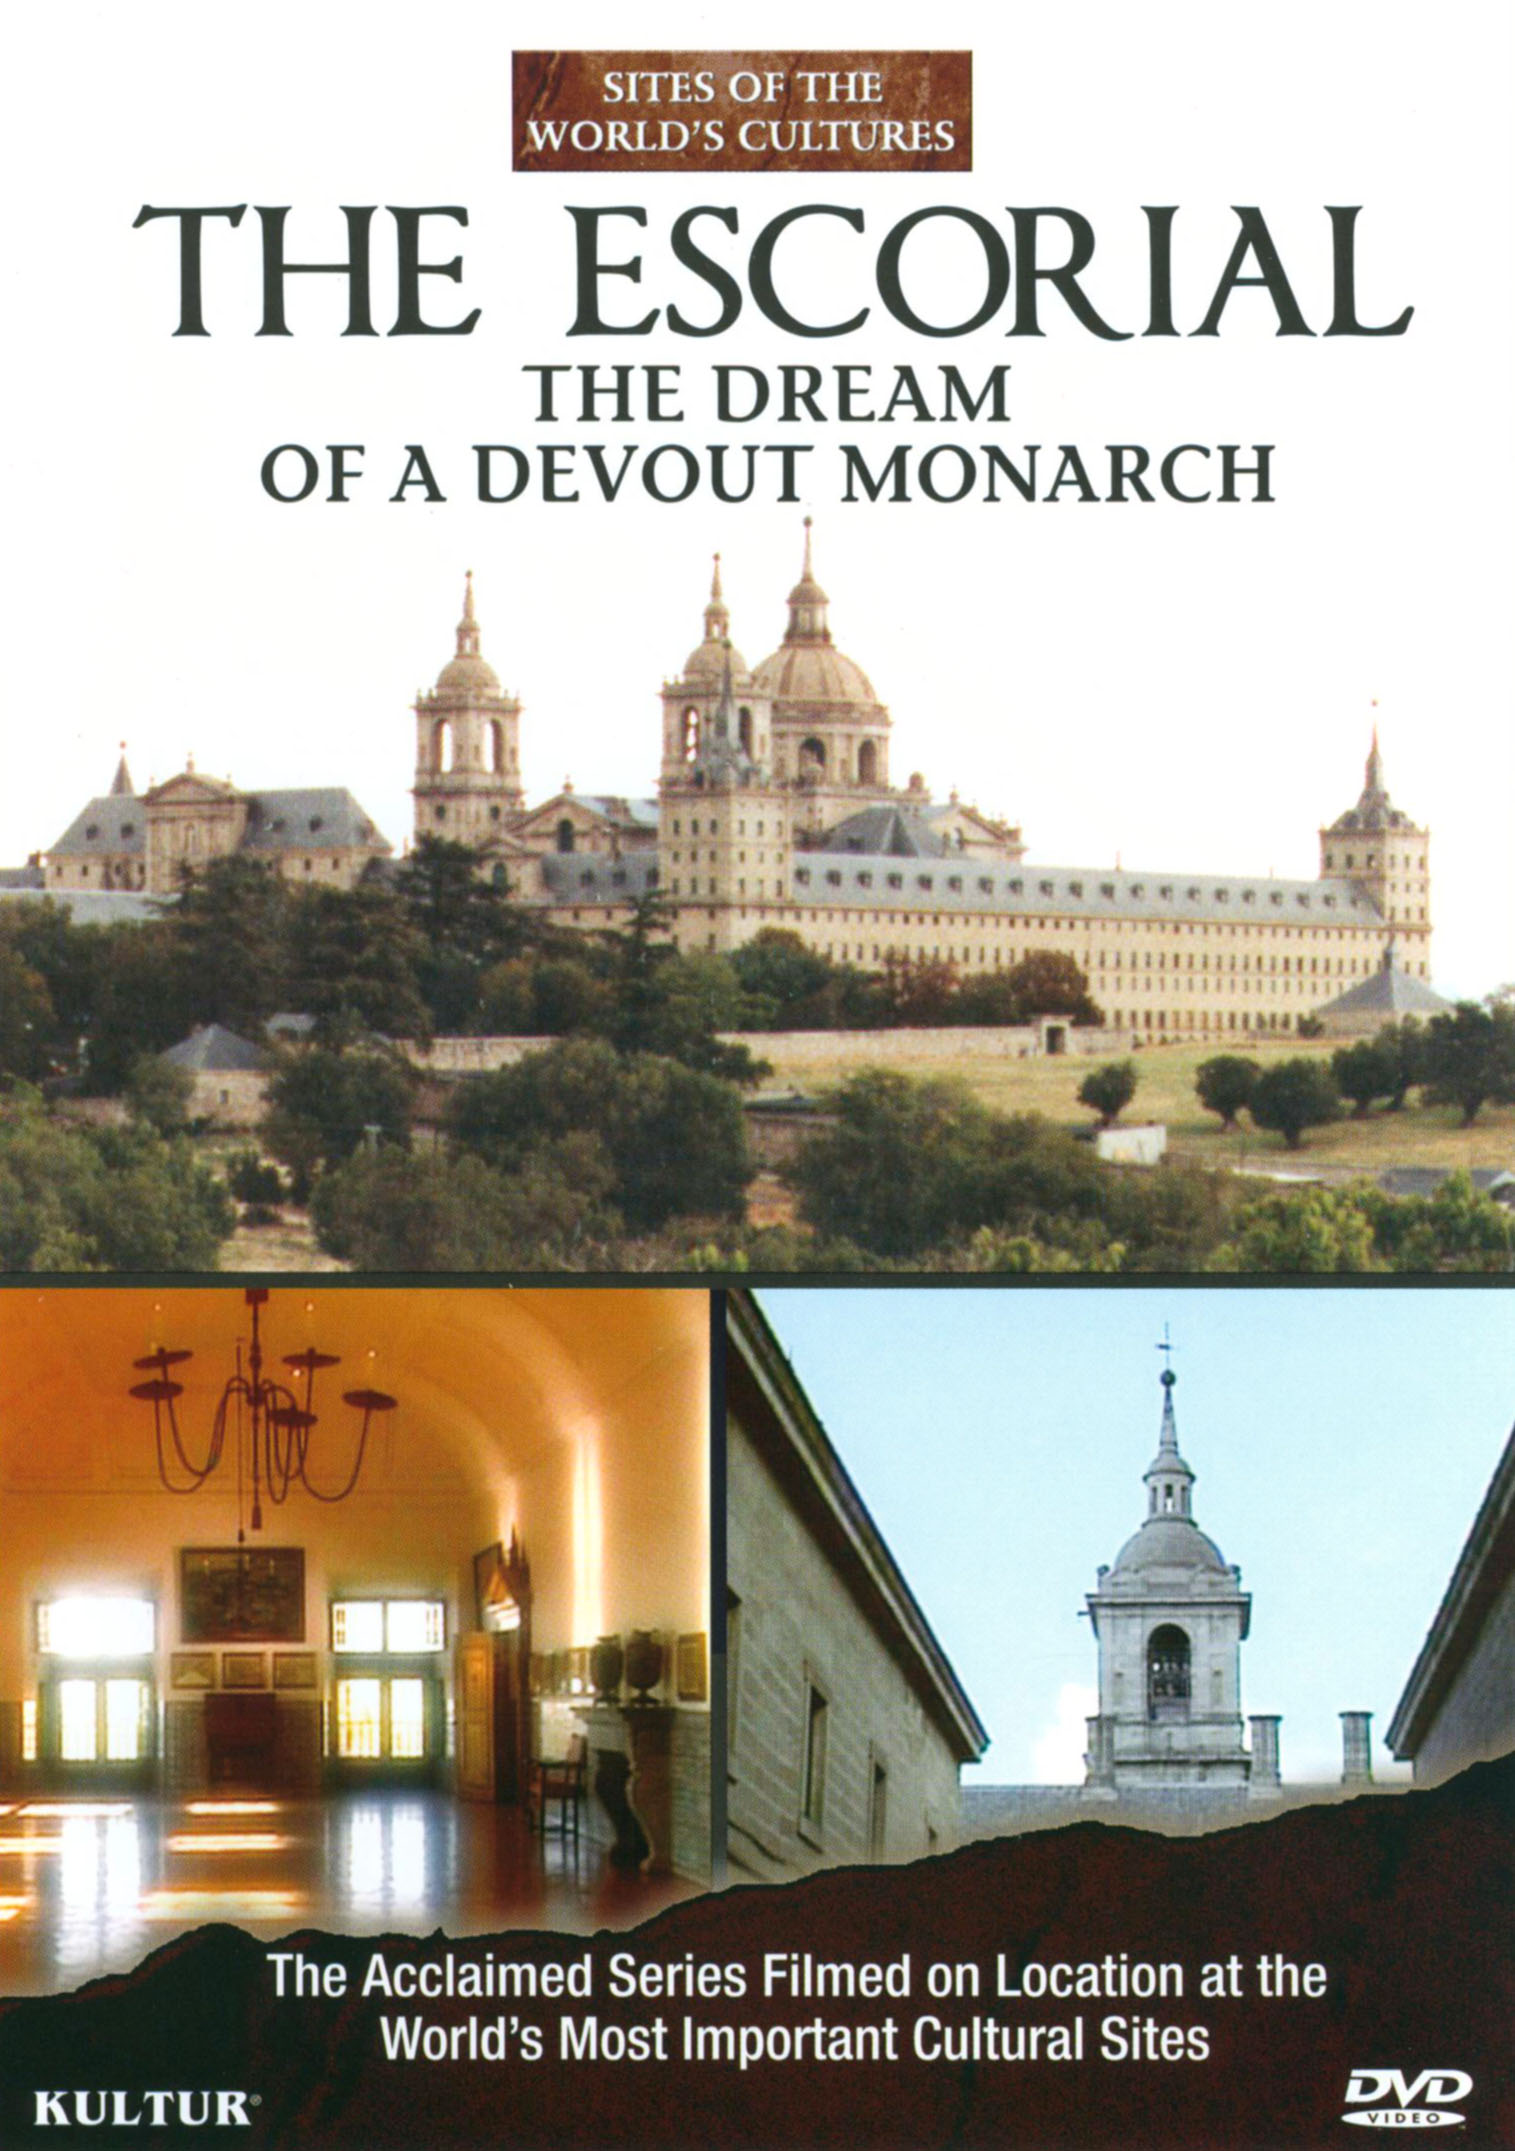 Sites of the World's Cultures: The Escorial - The Dream of a Devout Monarch